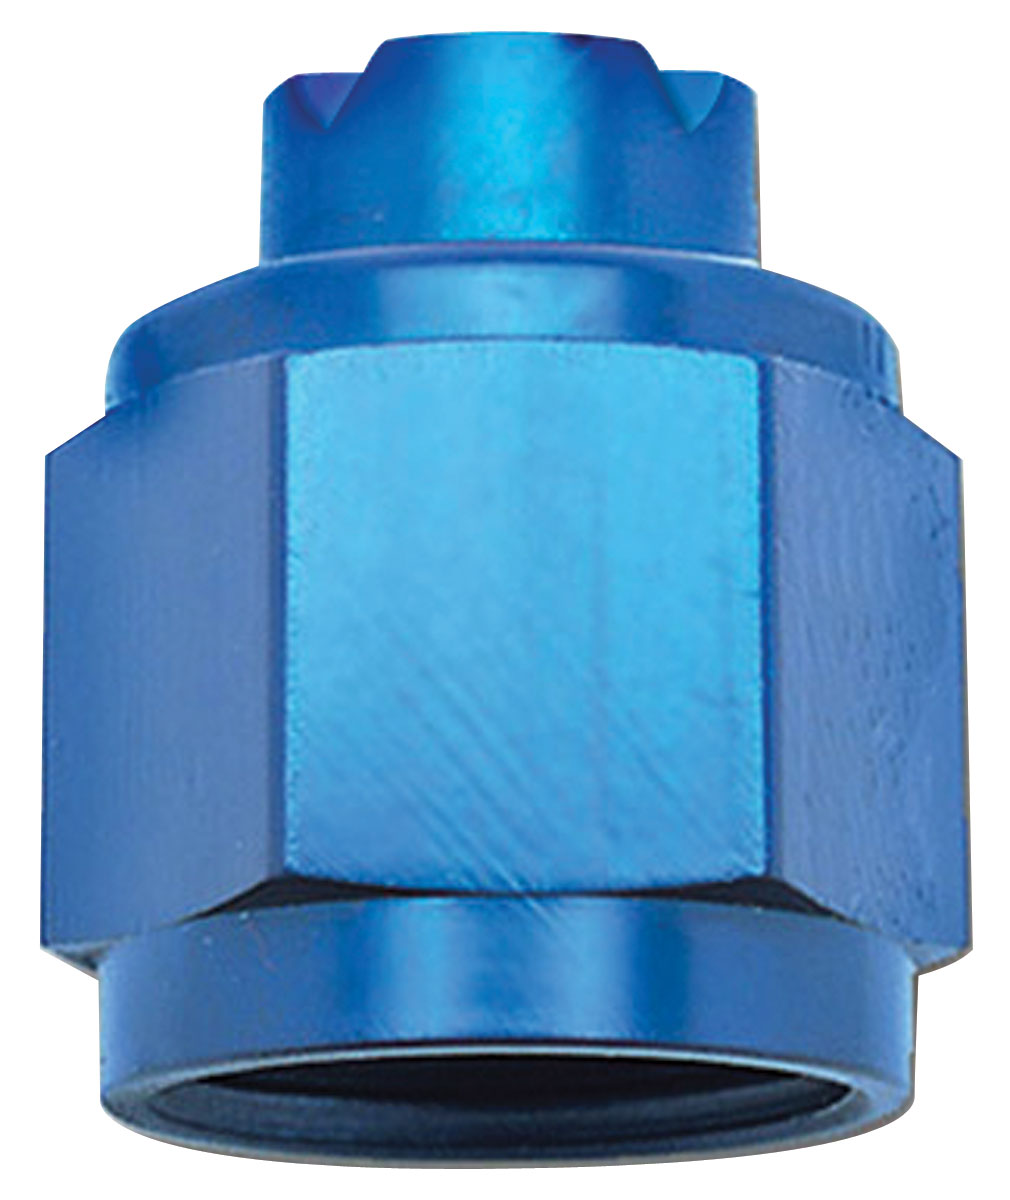 Photo of Adapter Fittings, Russell An Flare Cap -8 AN